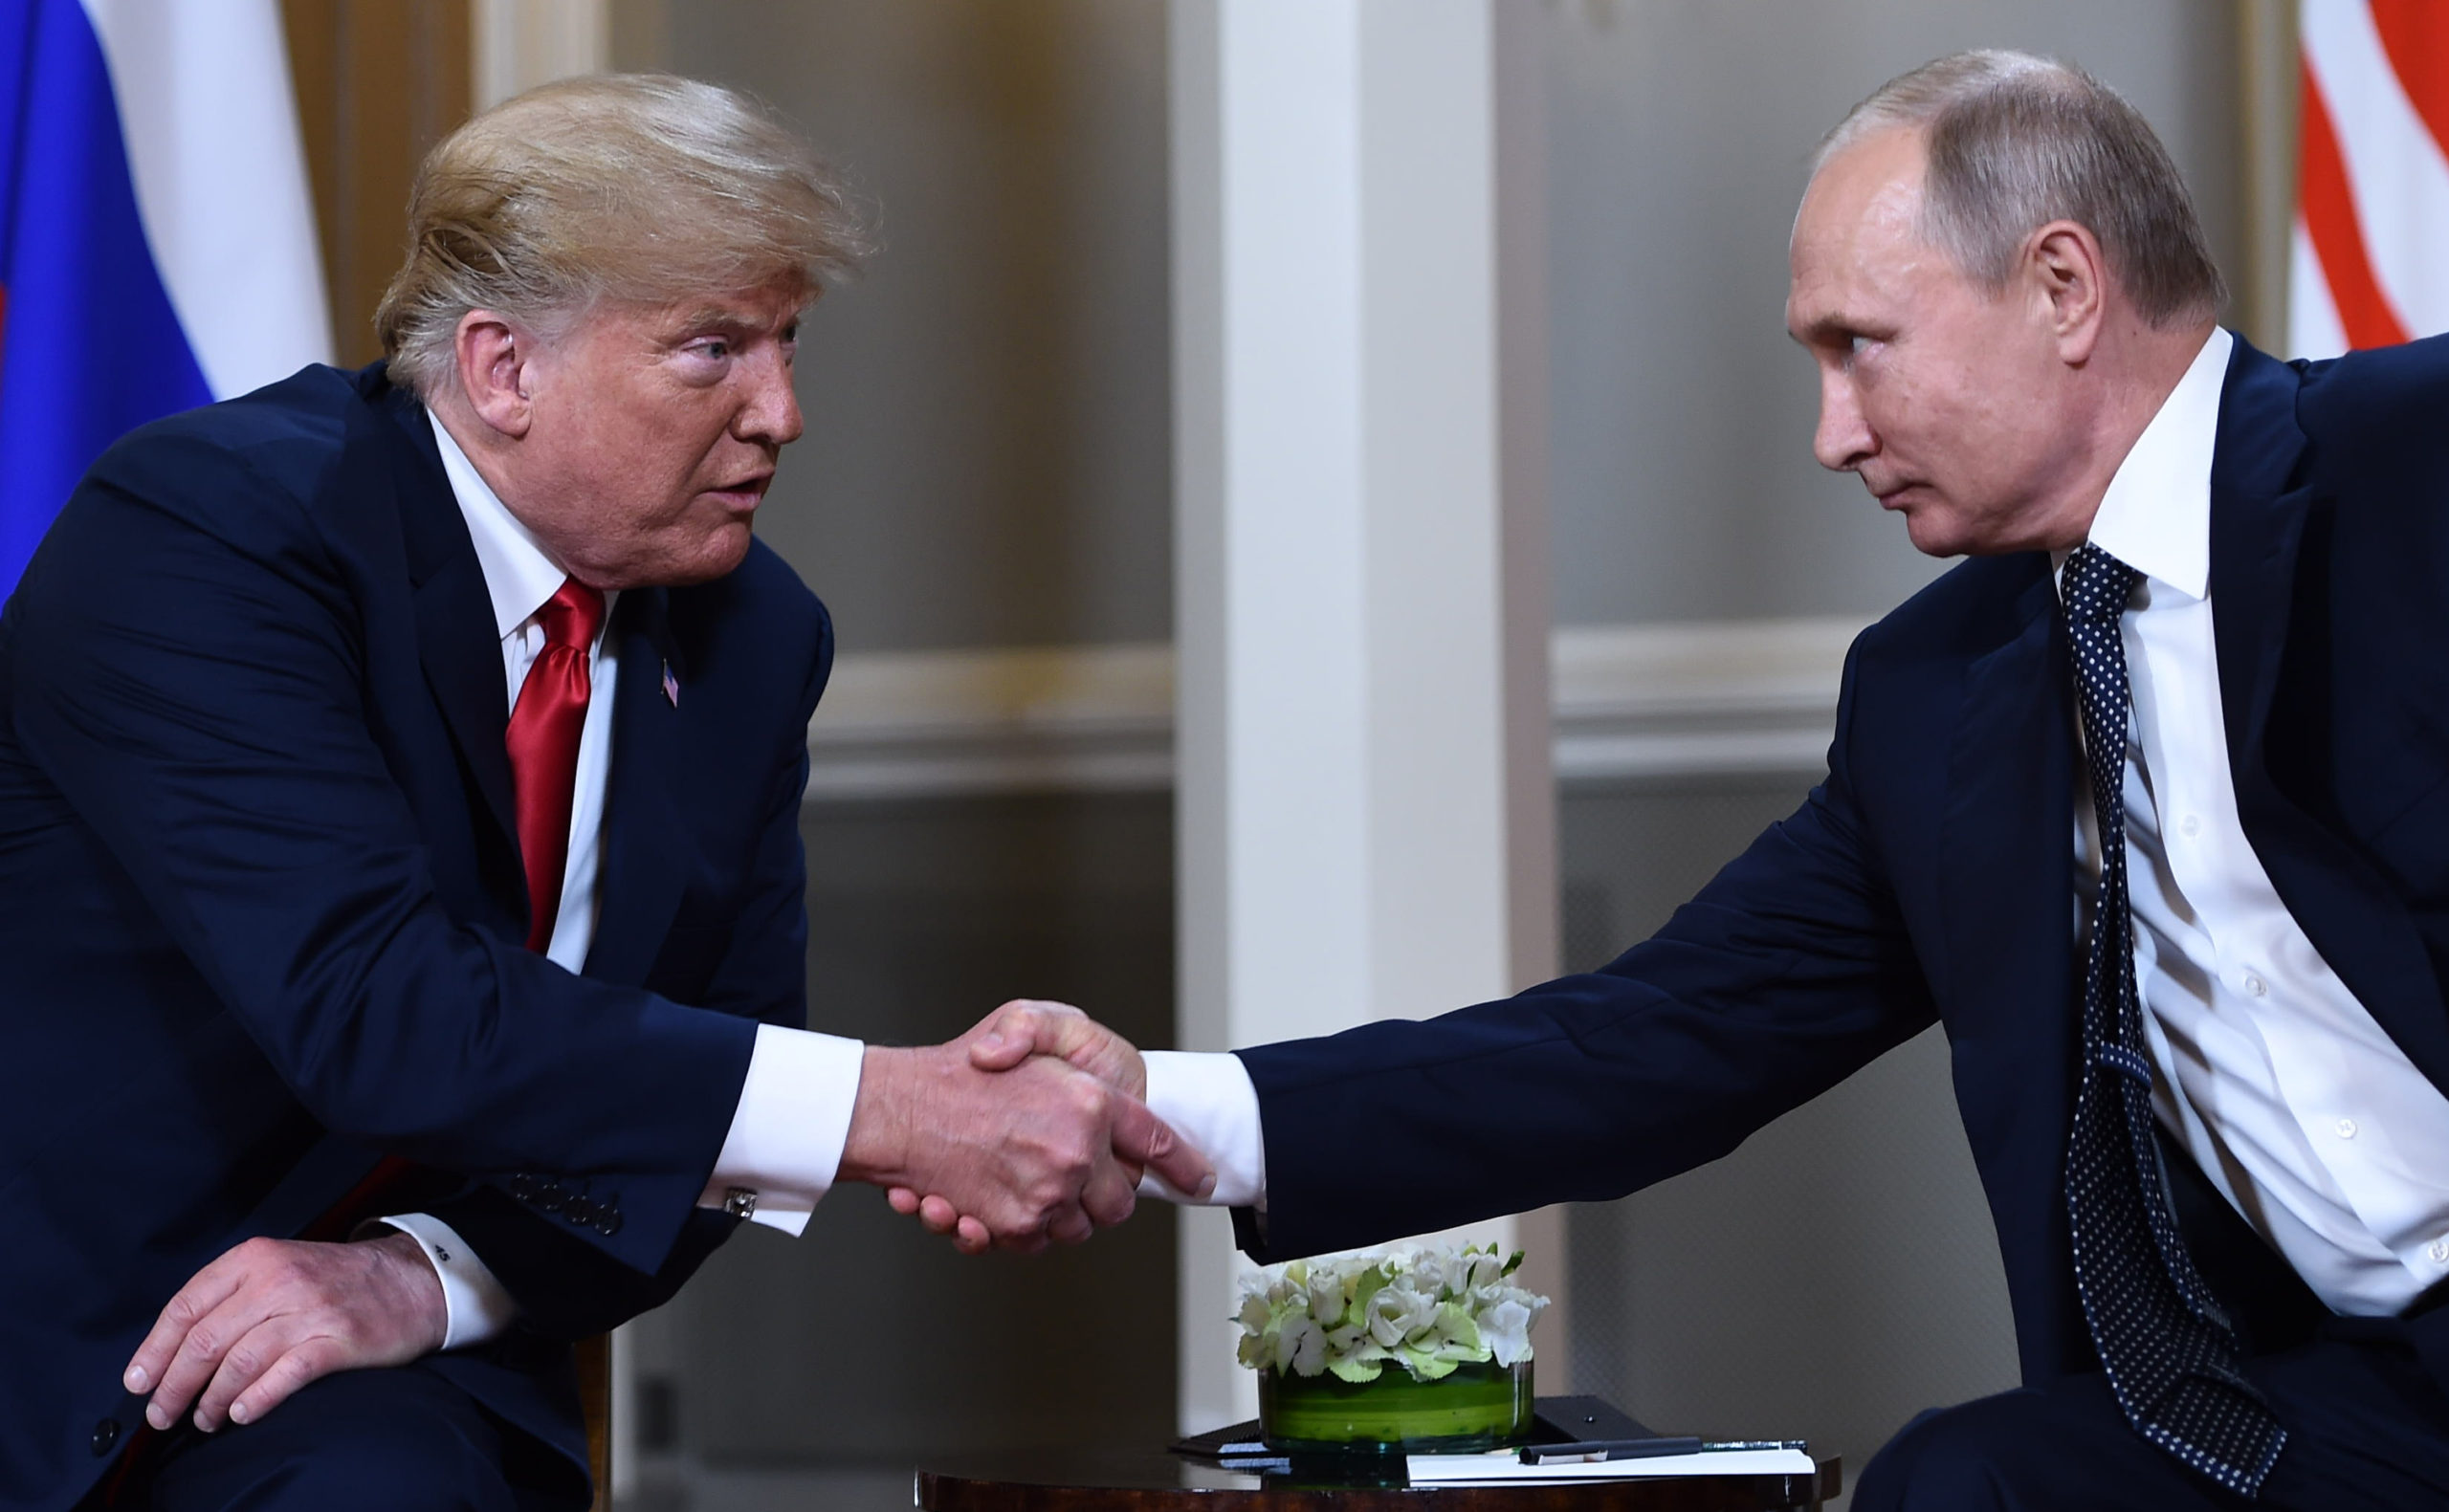 President Donald Trump and Russia President Vladimir Putin shake hands before a meeting in Helsinki, Finland on July 16, 2018. (Brendan Smialowski/AFP via Getty Images)